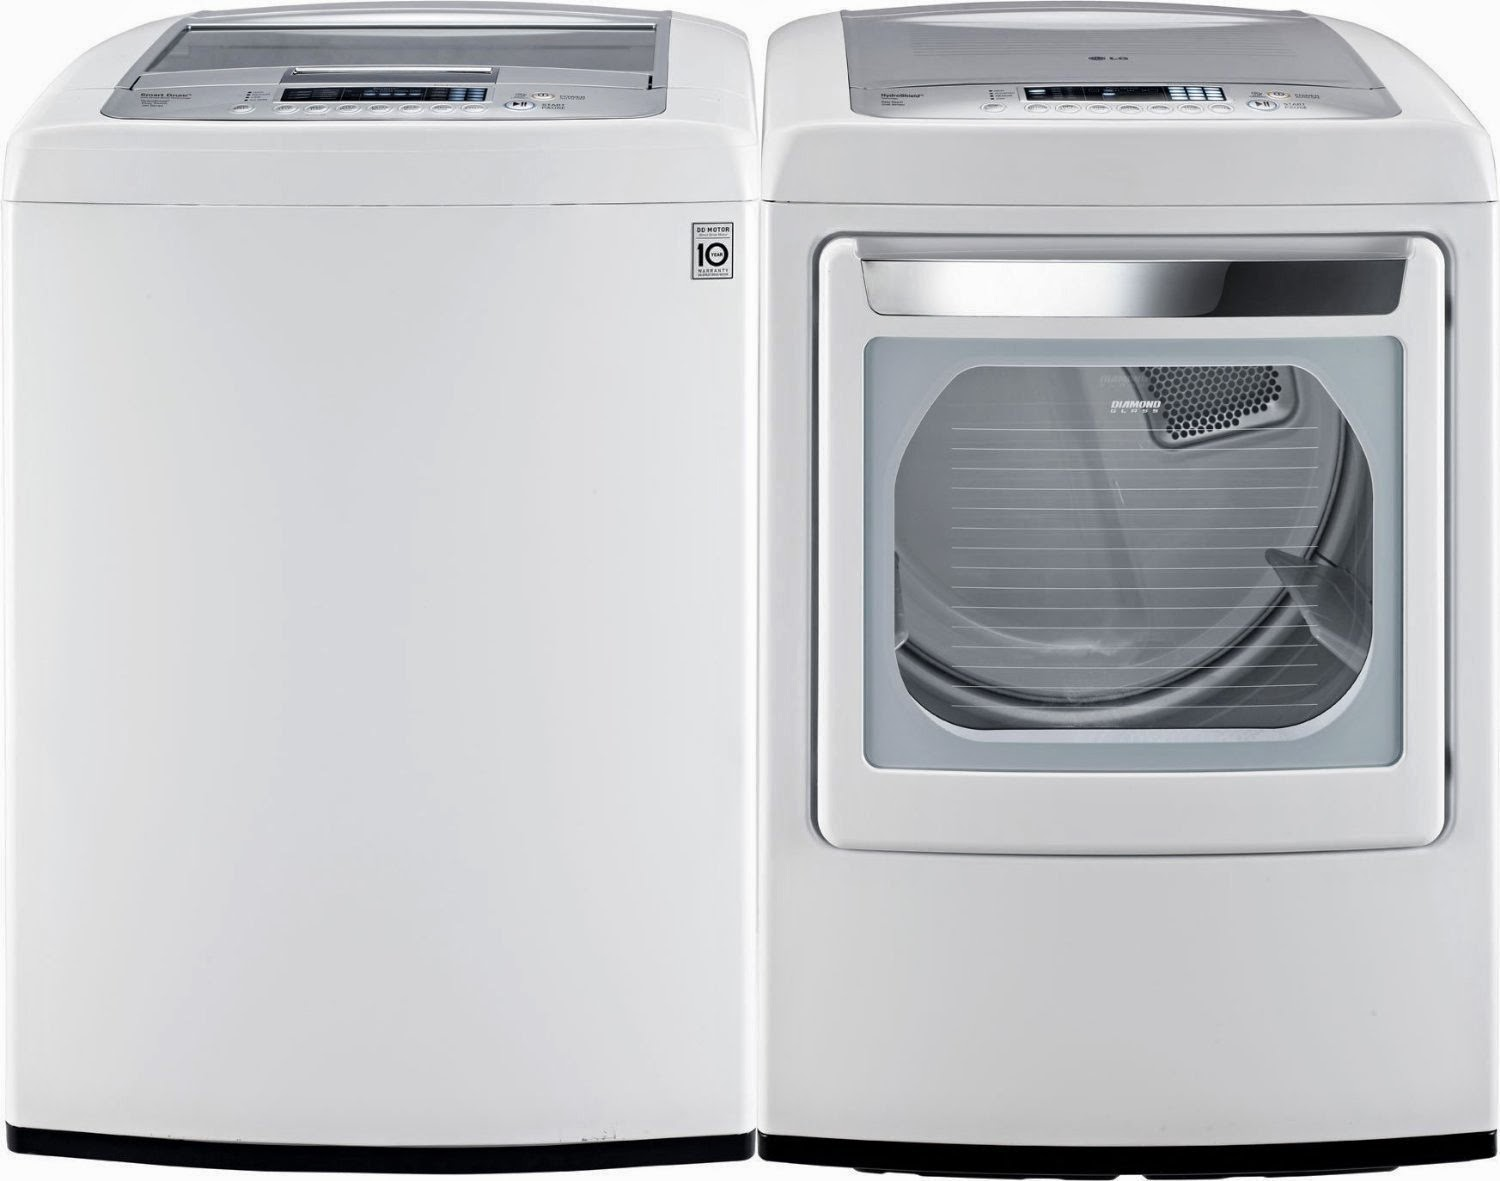 classic white lg top load washer and dryer